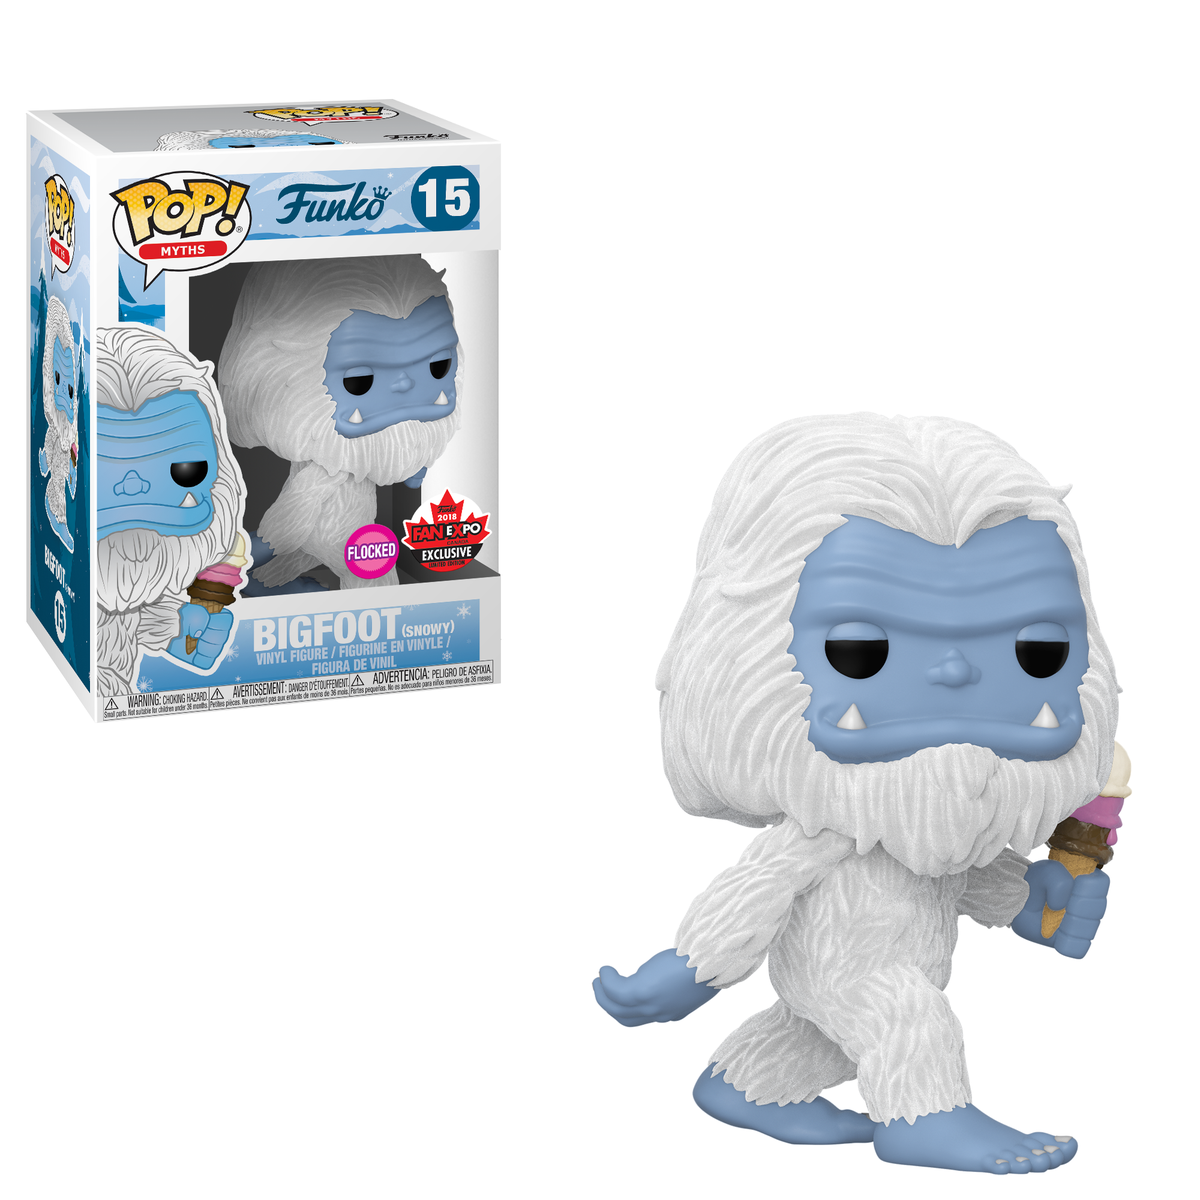 RT & follow @OriginalFunko for the chance to win a @FANEXPOCANADA exclusive FLOCKED Bigfoot Pop!